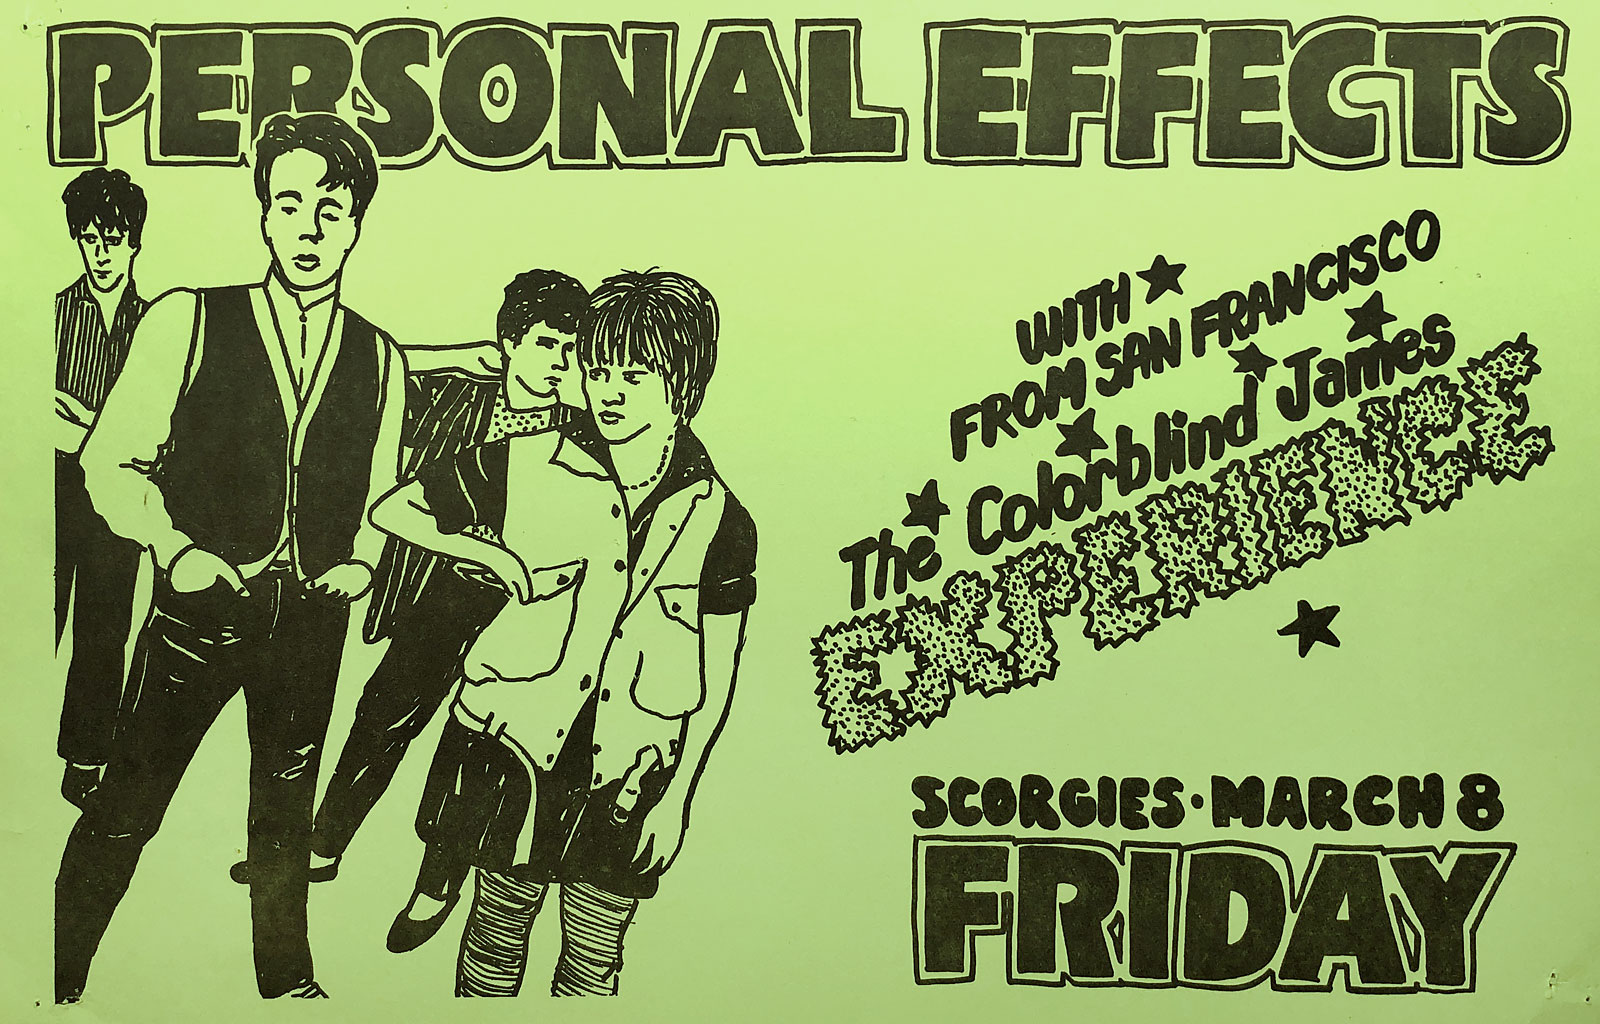 Poster for Personal Effects with Colorblind James Experience at Scorgie'sin Rochester, New York on 03.08.1985